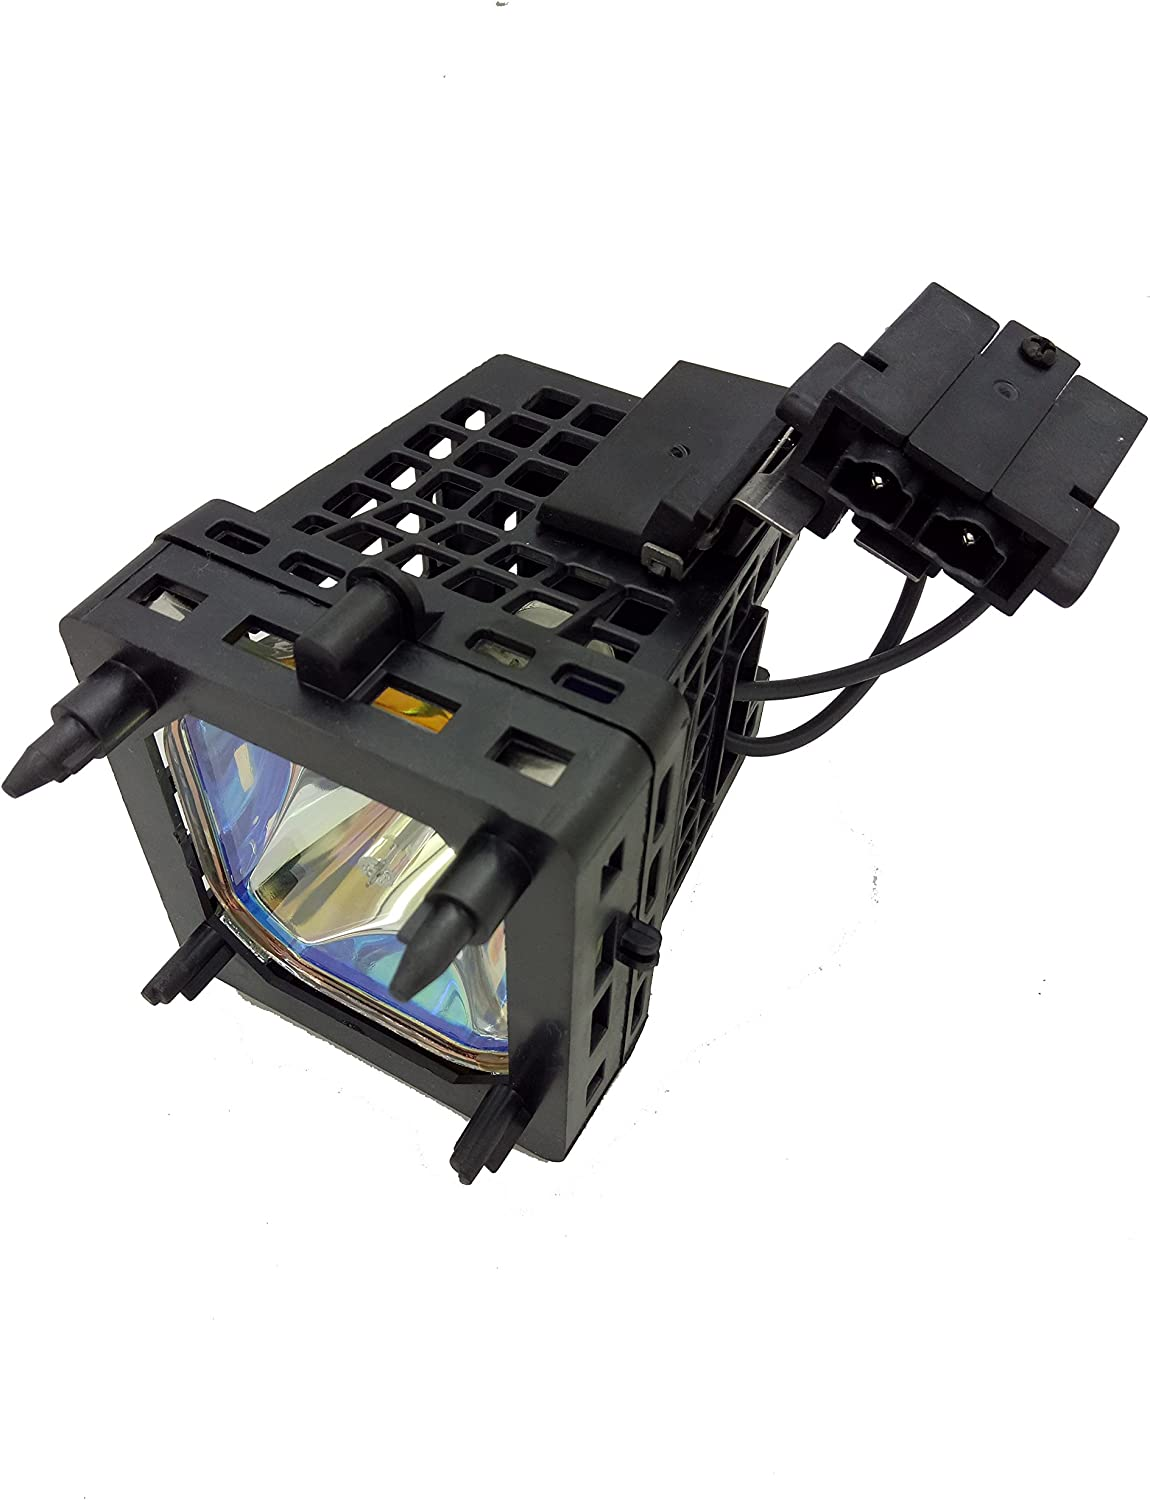 Replacement Video TV XL 5200 Projector Lamp Bulbs For XL-5200 Compatible For SONY KDS-50A2000,SONY KDS-50A2020,SONY KDS-50A3000,SONY KDS-55A2000,SONY KDS-55A2020,SONY KDS 55A3000,SONY KDS-60A2000,SONY KDS-60A2020,SONY KDS-60A3000